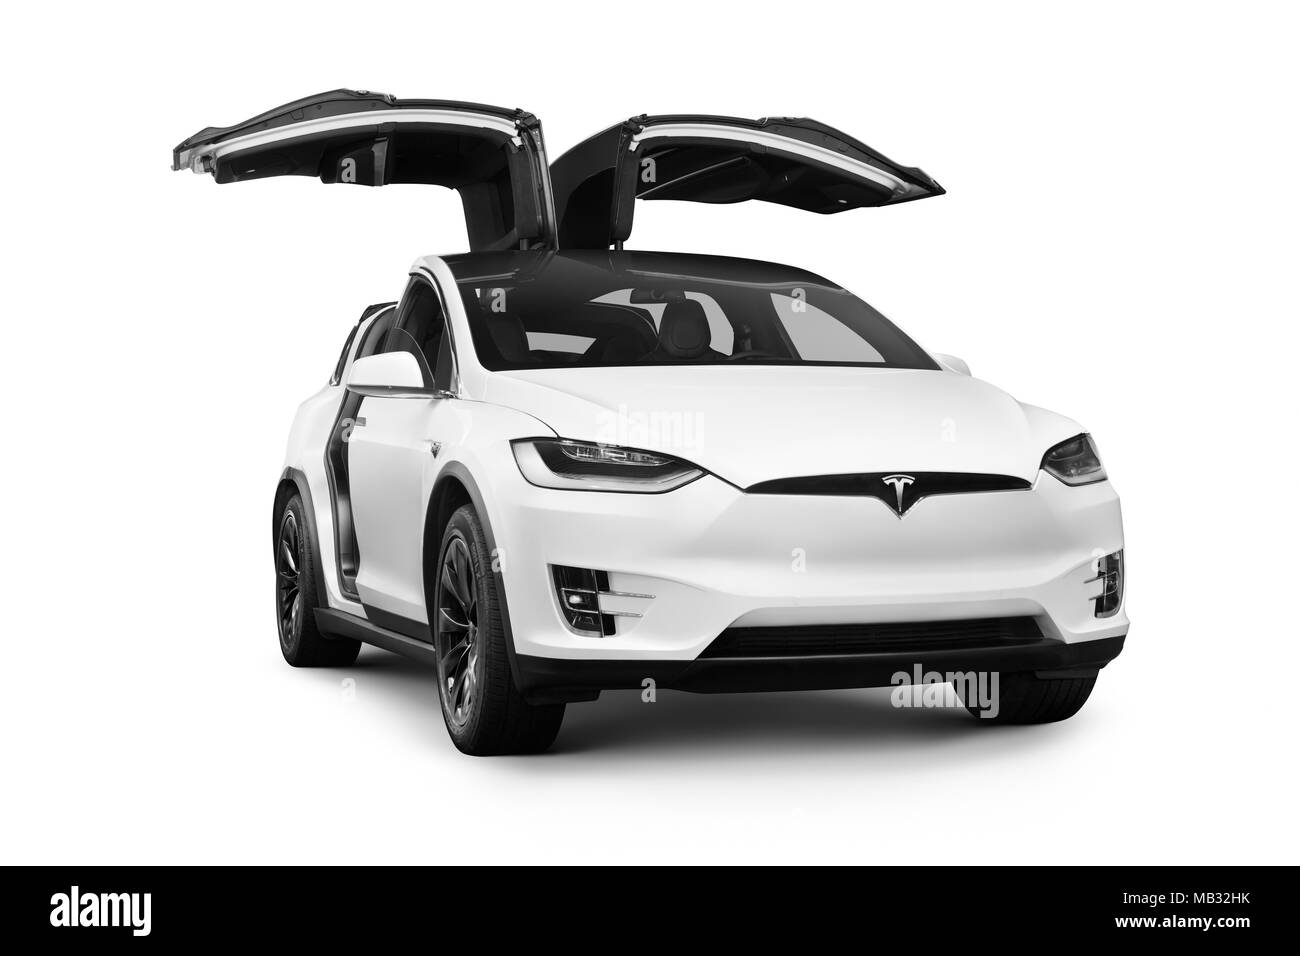 White Tesla Model X luxury SUV electric car with open falcon wing doors, 2018, isolated on white background - Stock Image